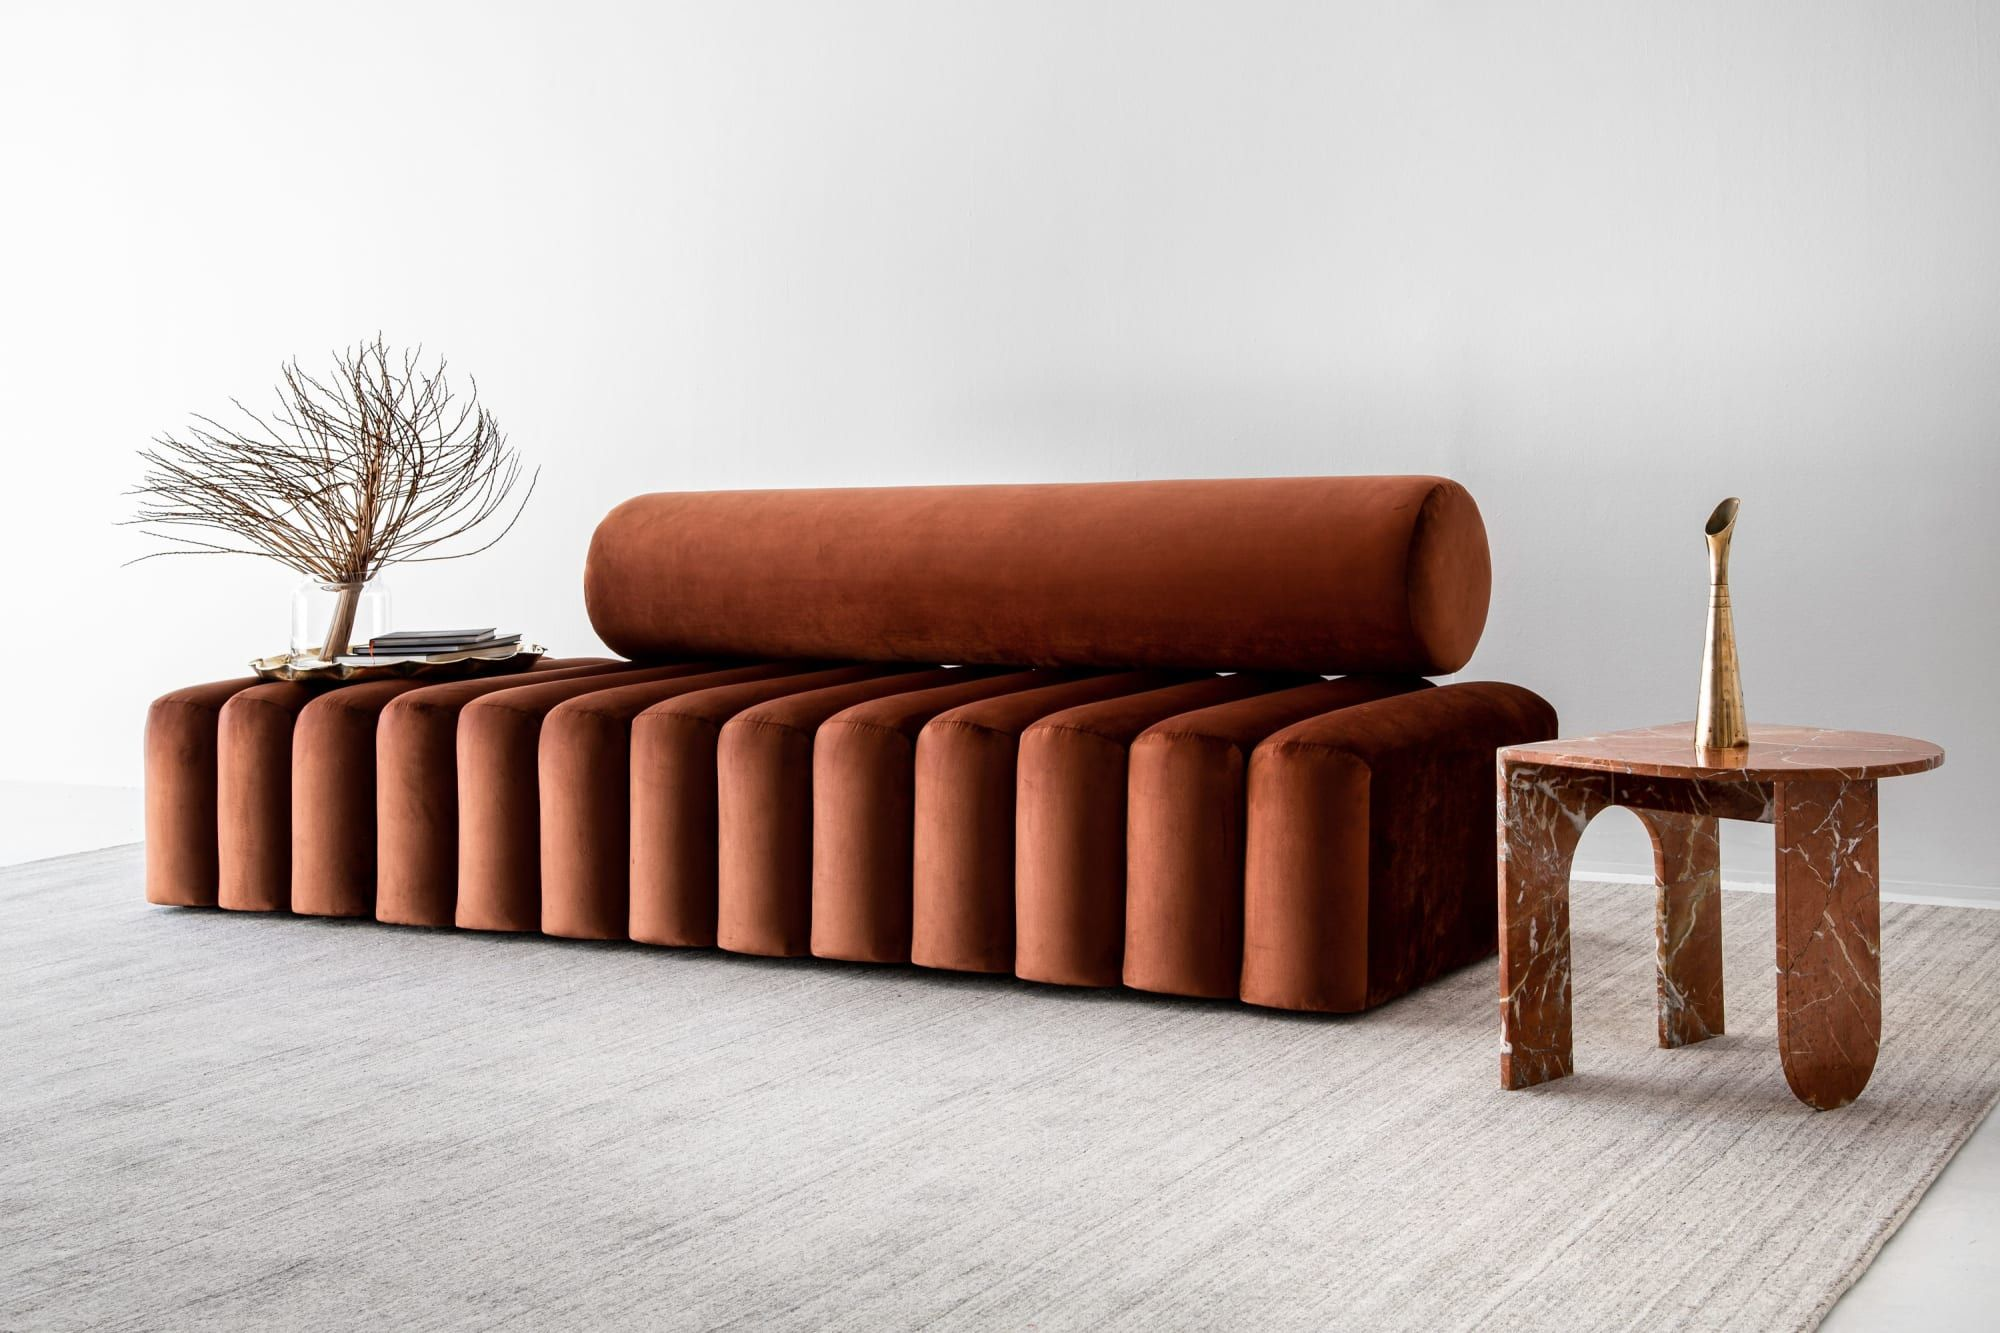 Couches Sofas New Moon Couch Curved Furniture Furniture